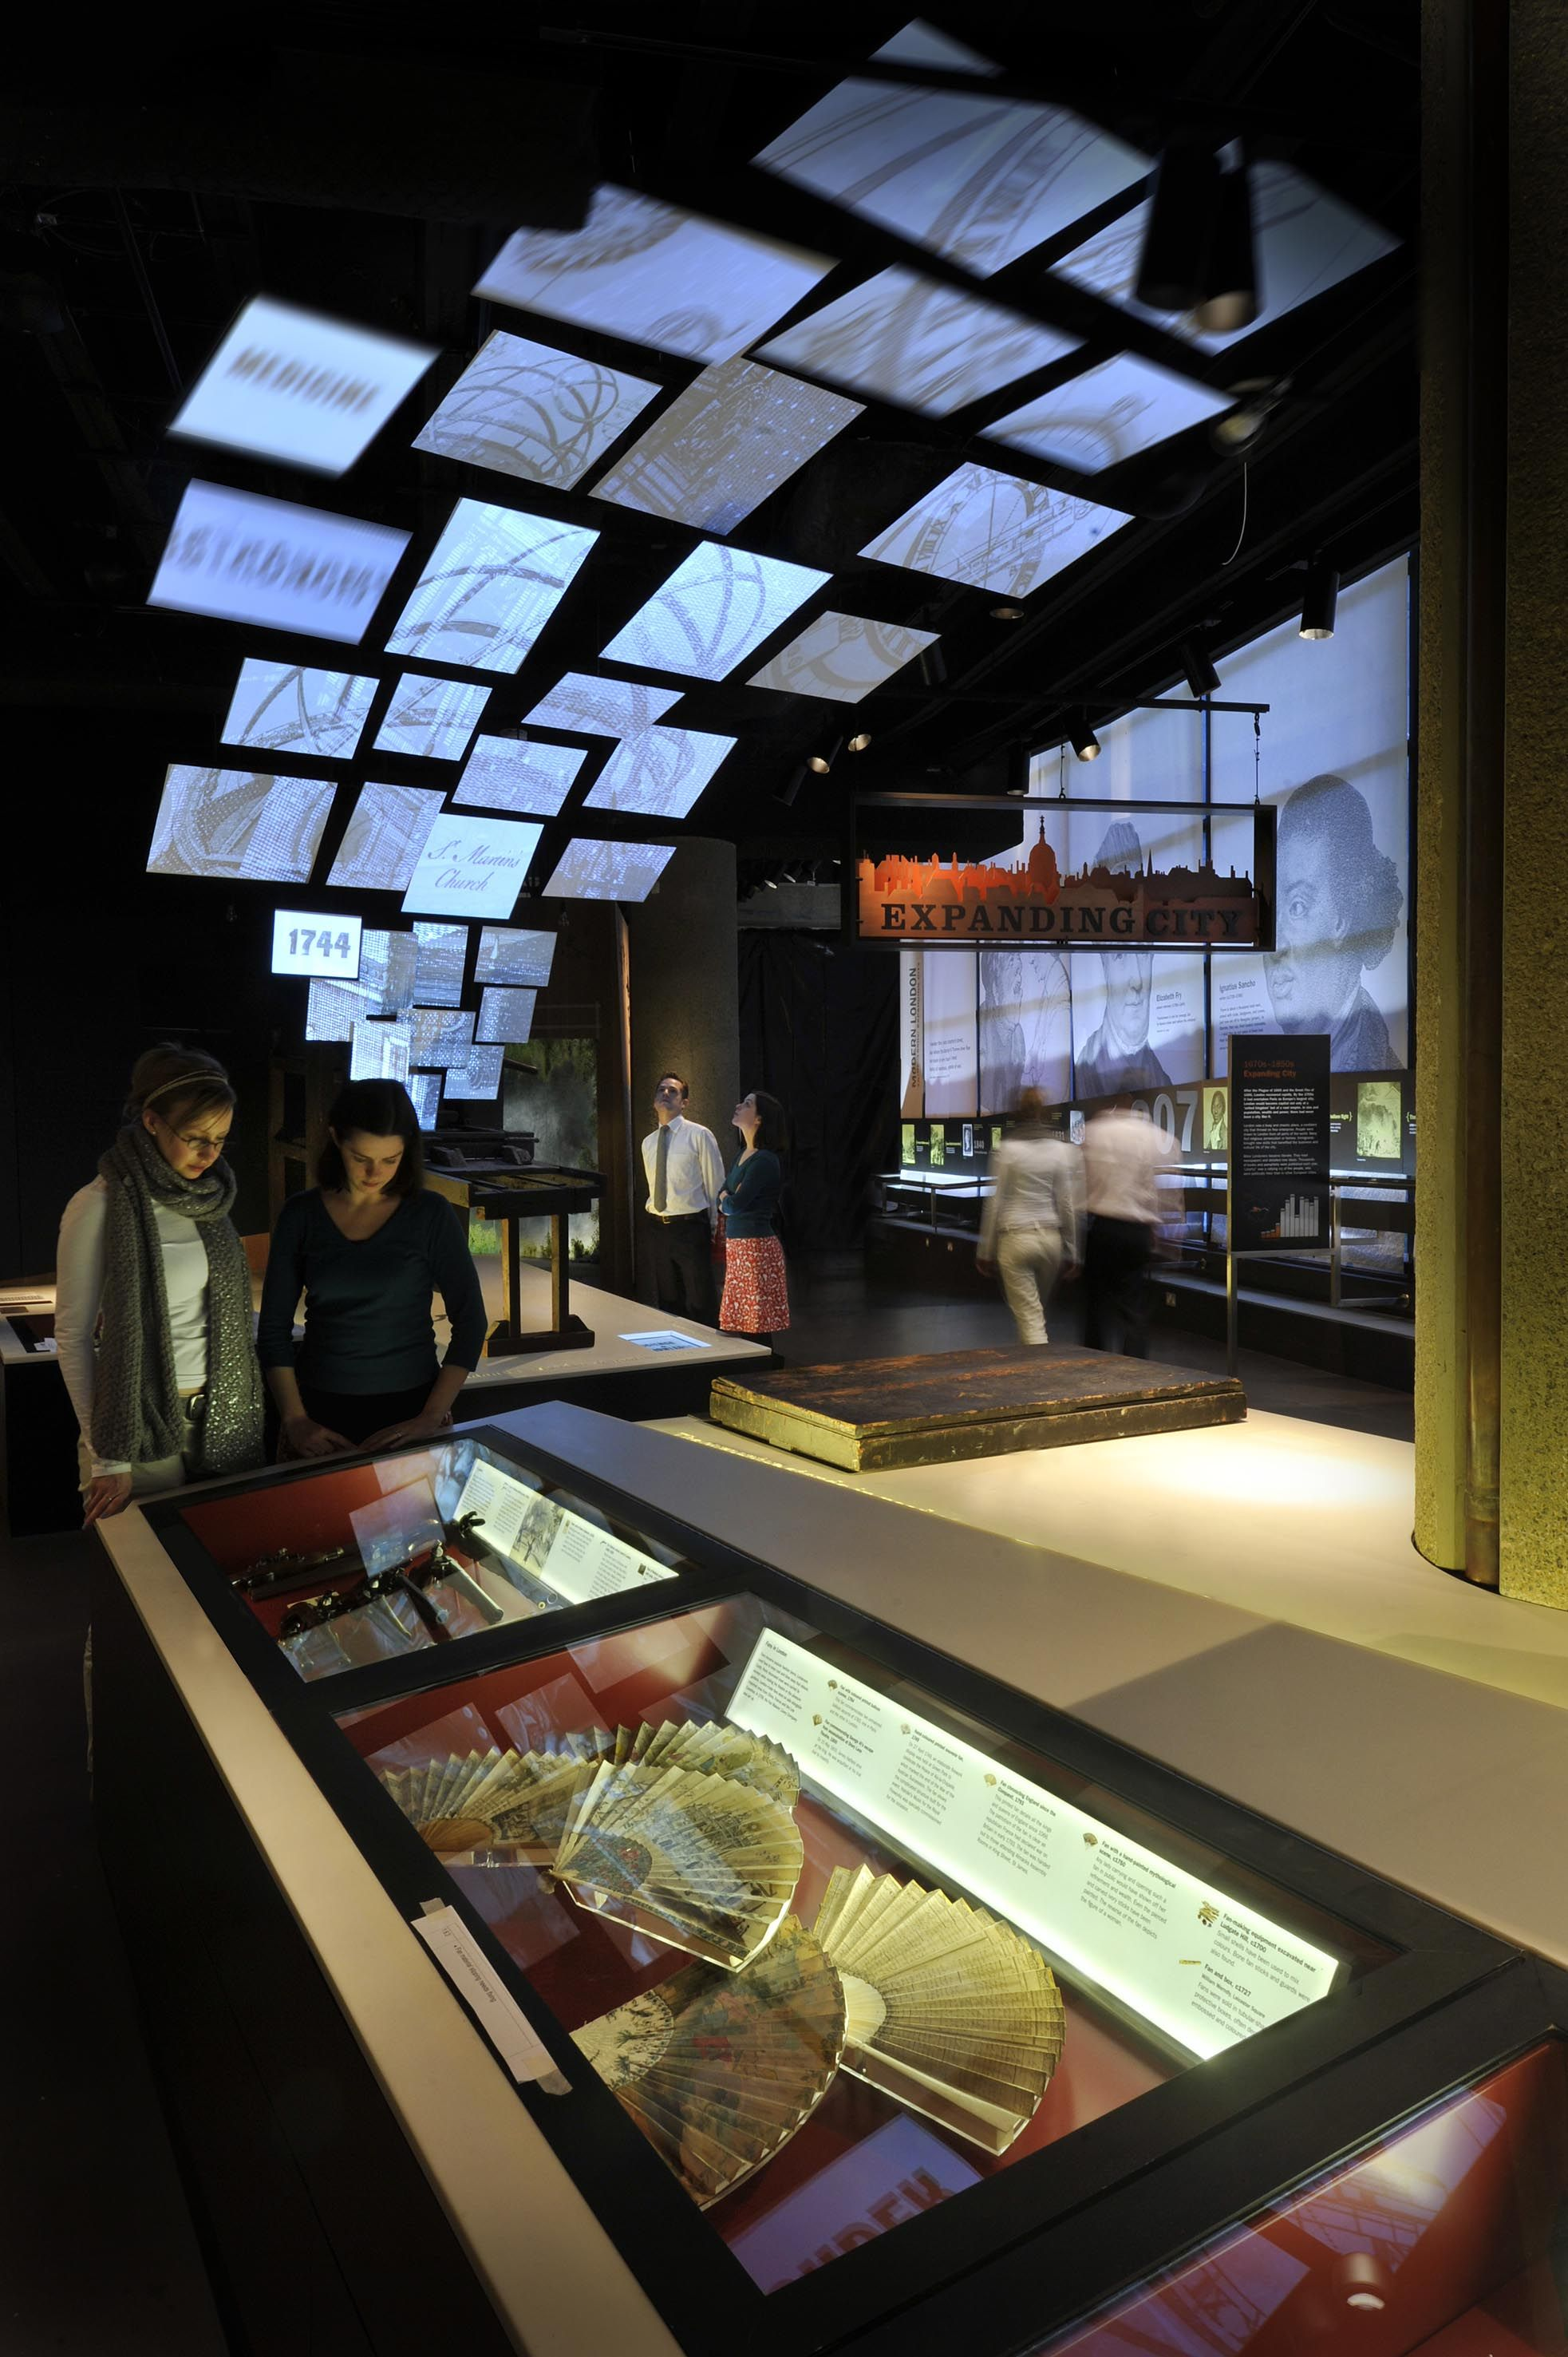 Exhibition Booth London : Expanding city s c museum of london g